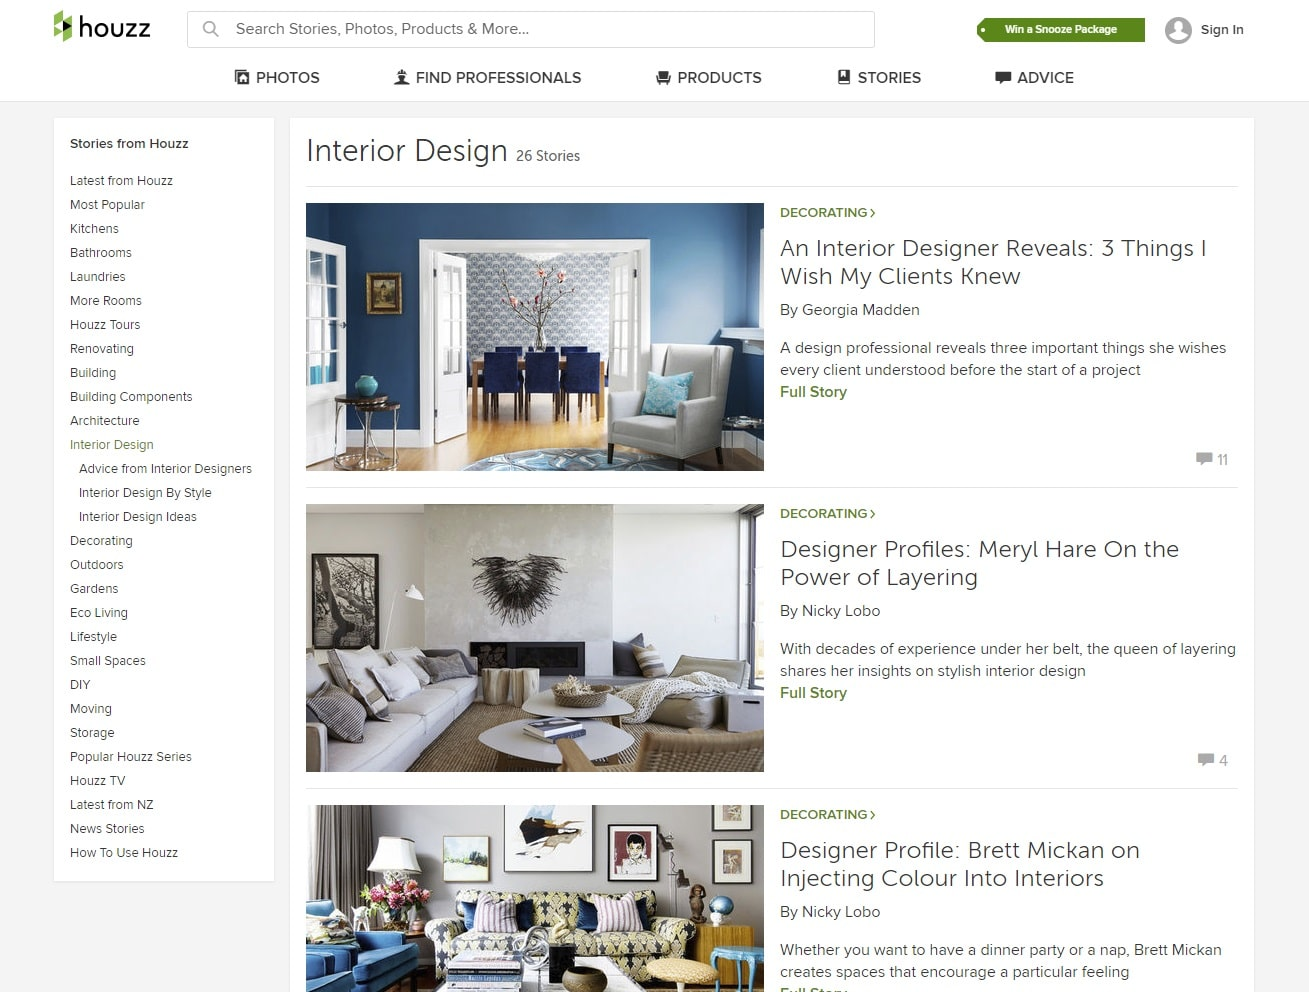 houzz interior design website